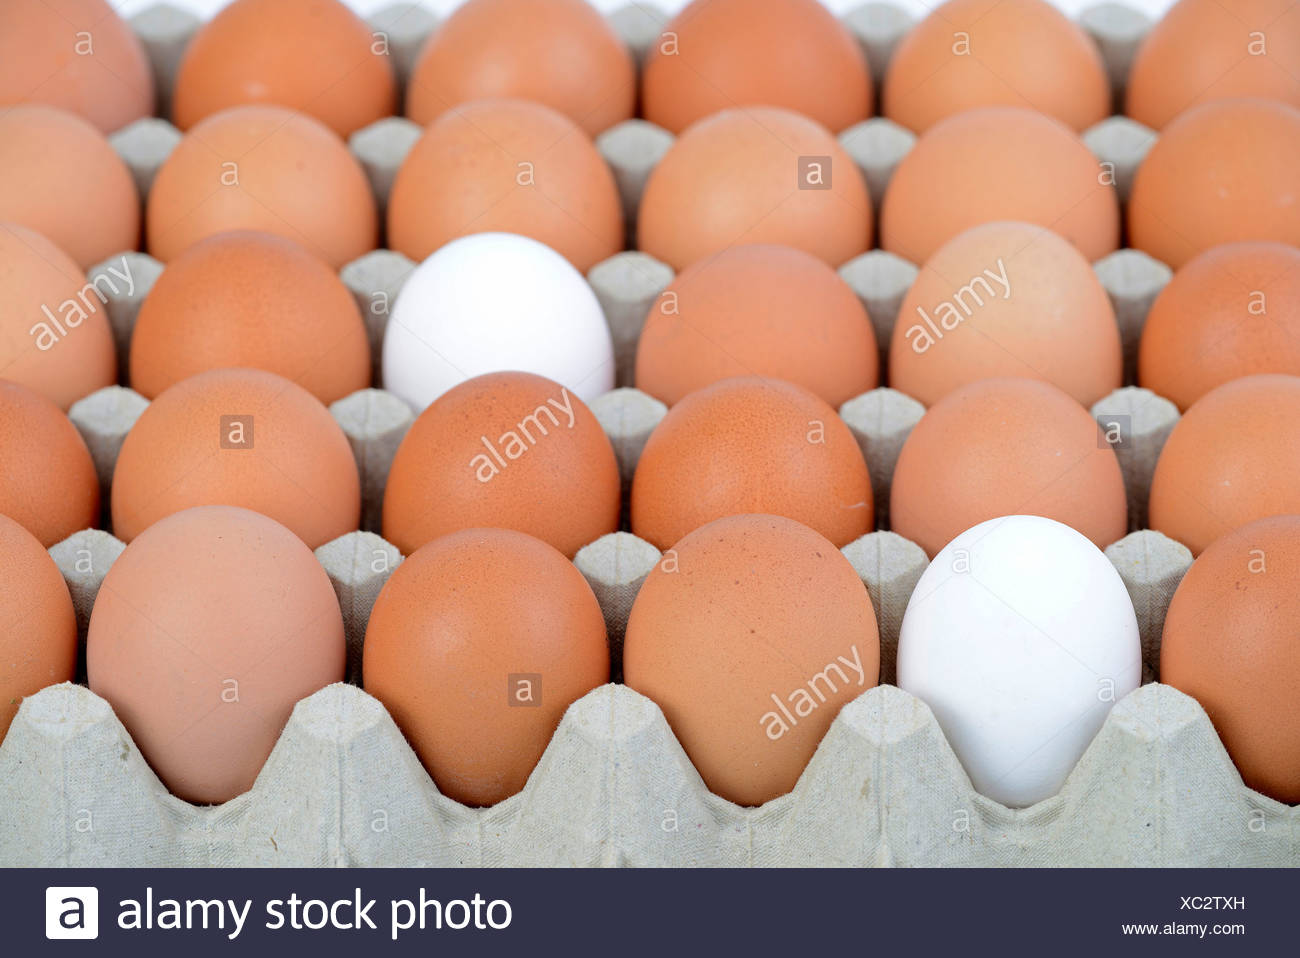 Hen's eggs, white and brown - Stock Image